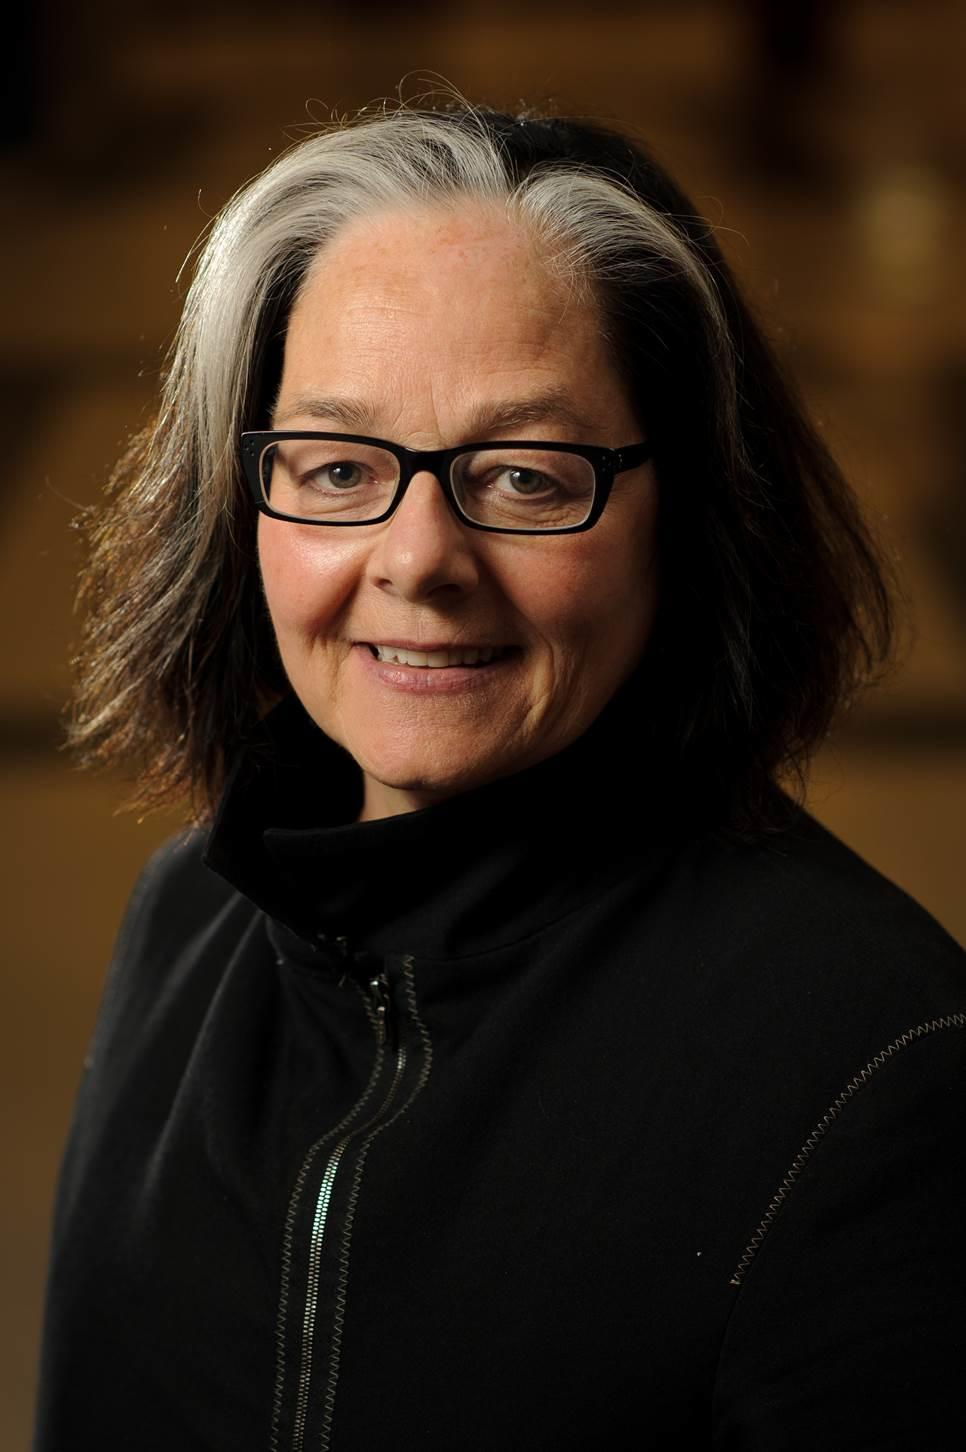 Beverly A. Sandalack, professor and associate dean, Faculty of Environmental Design, has received the Canadian Society of Landscape Architects Teaching Award.